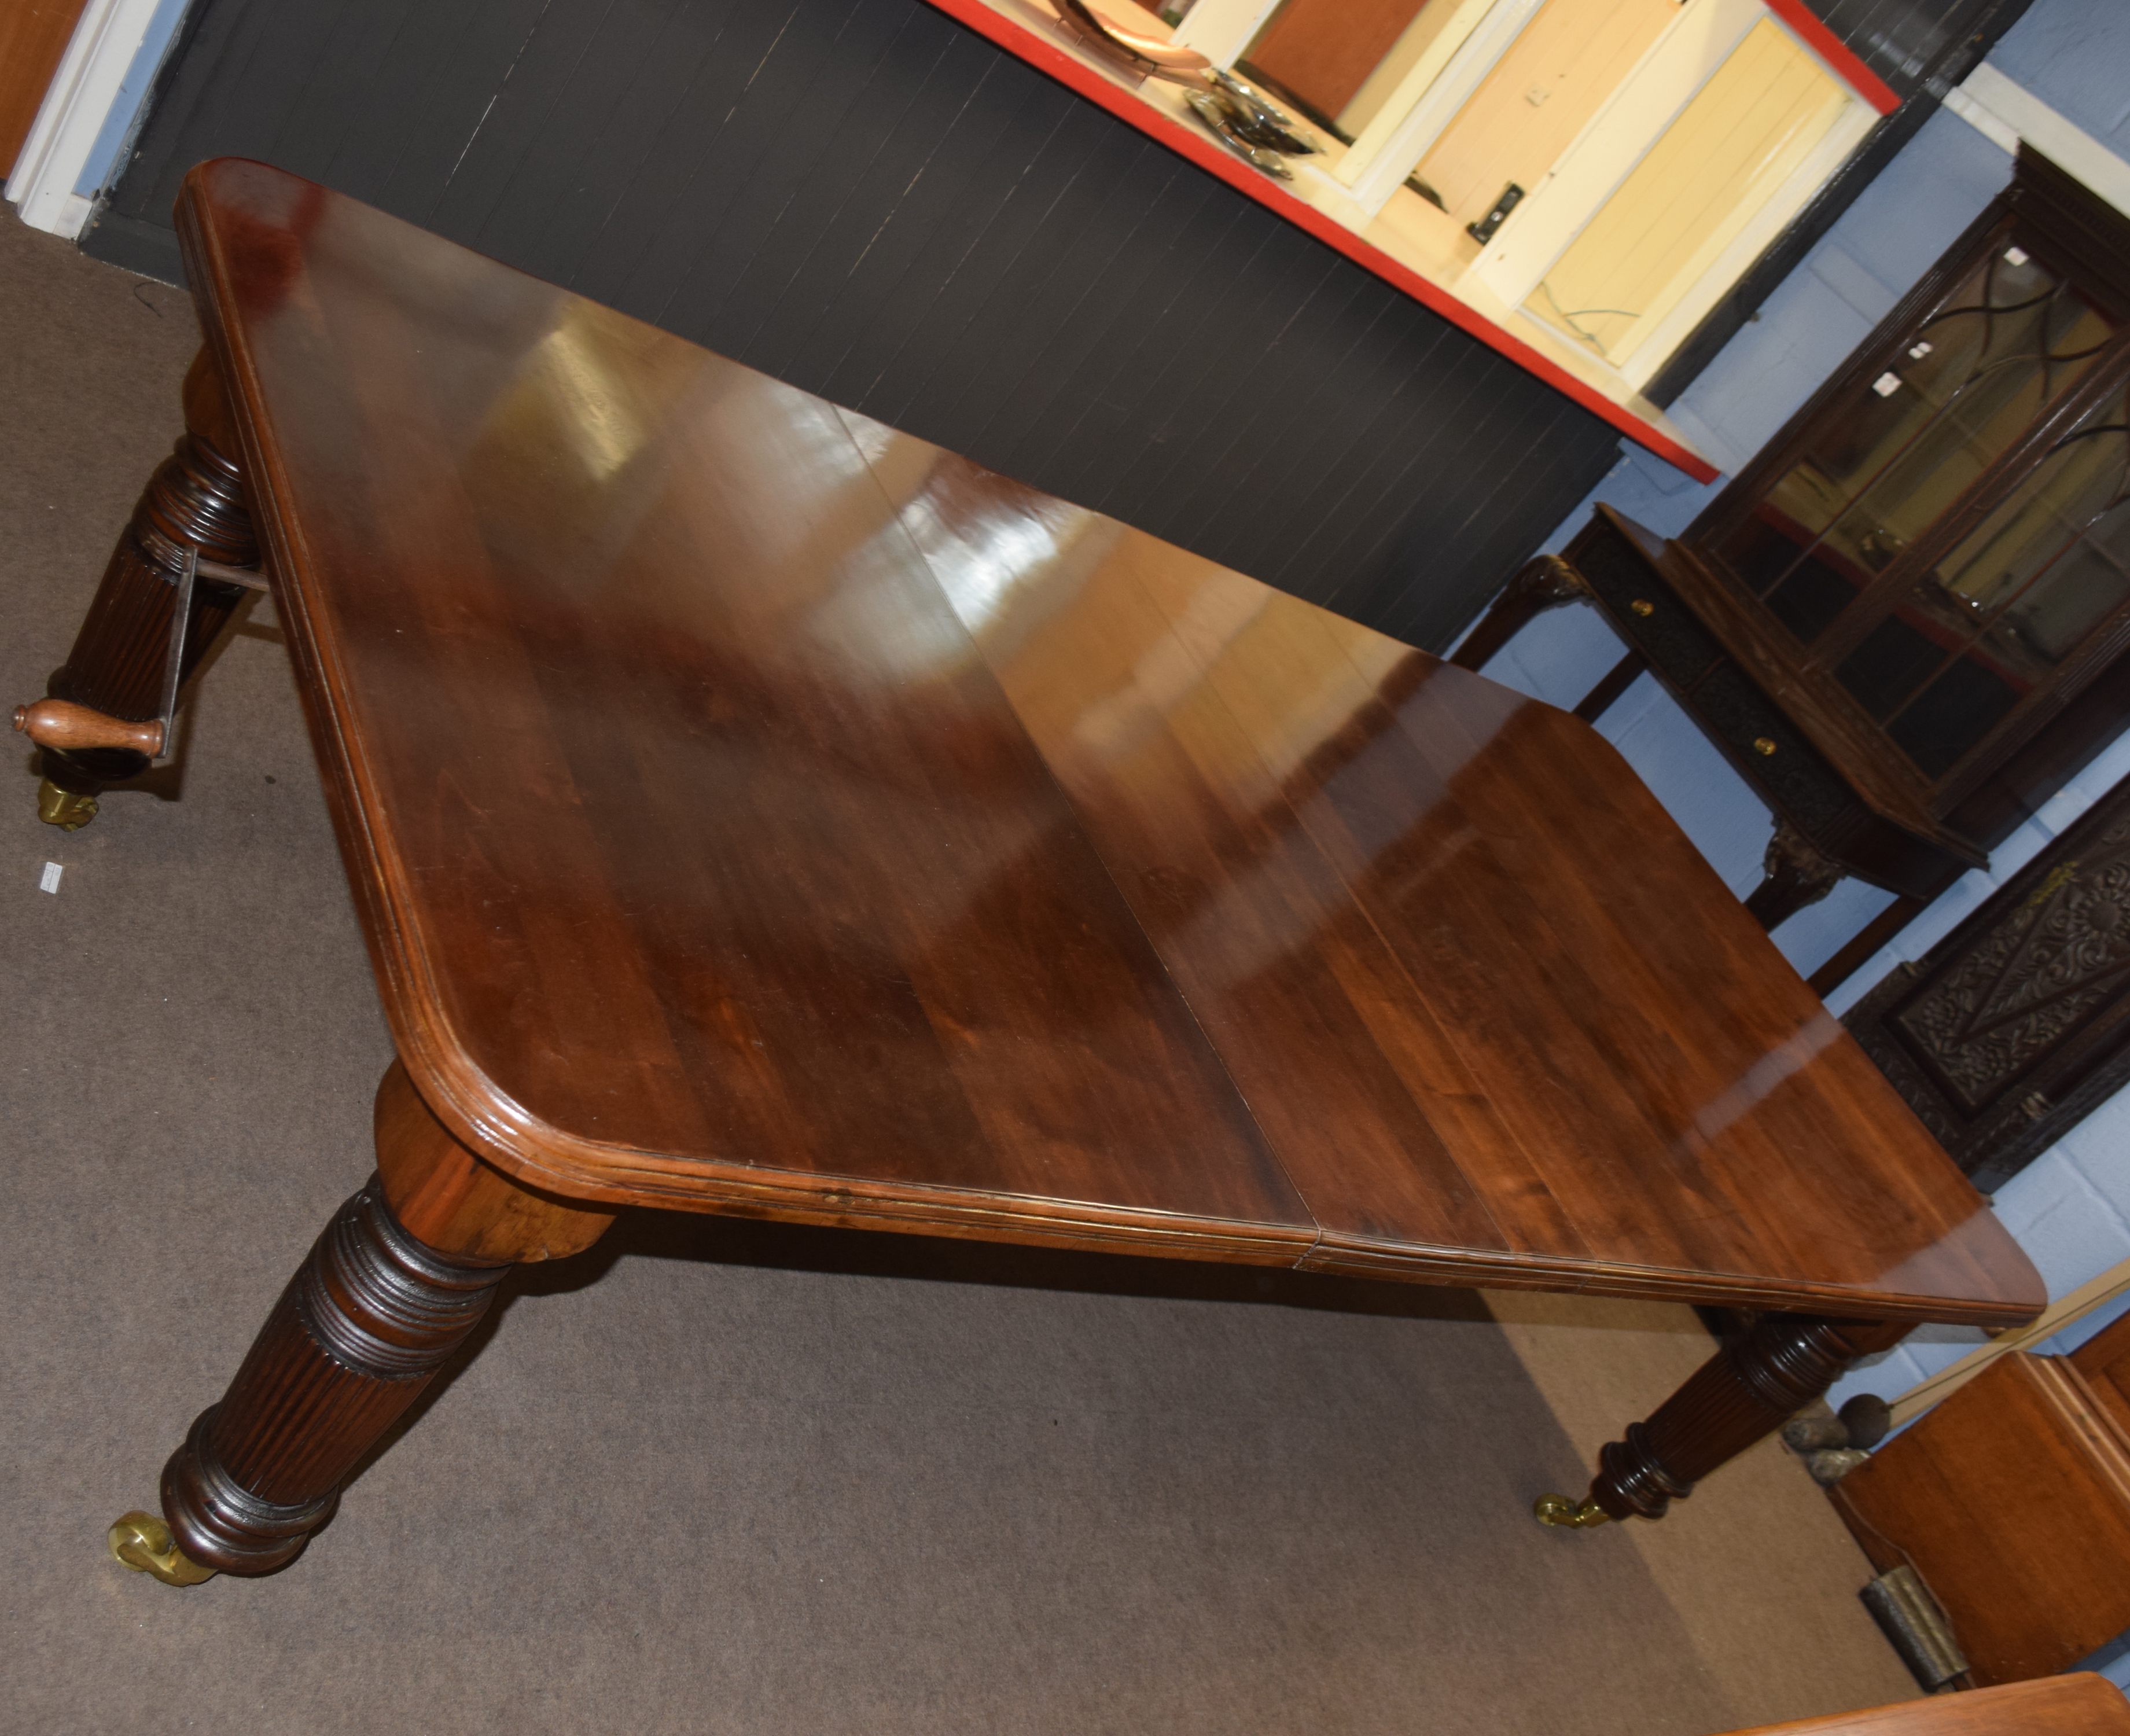 Late Victorian mahogany extending dining table raised on fluted legs and brass casters, 237cm wide - Image 3 of 6